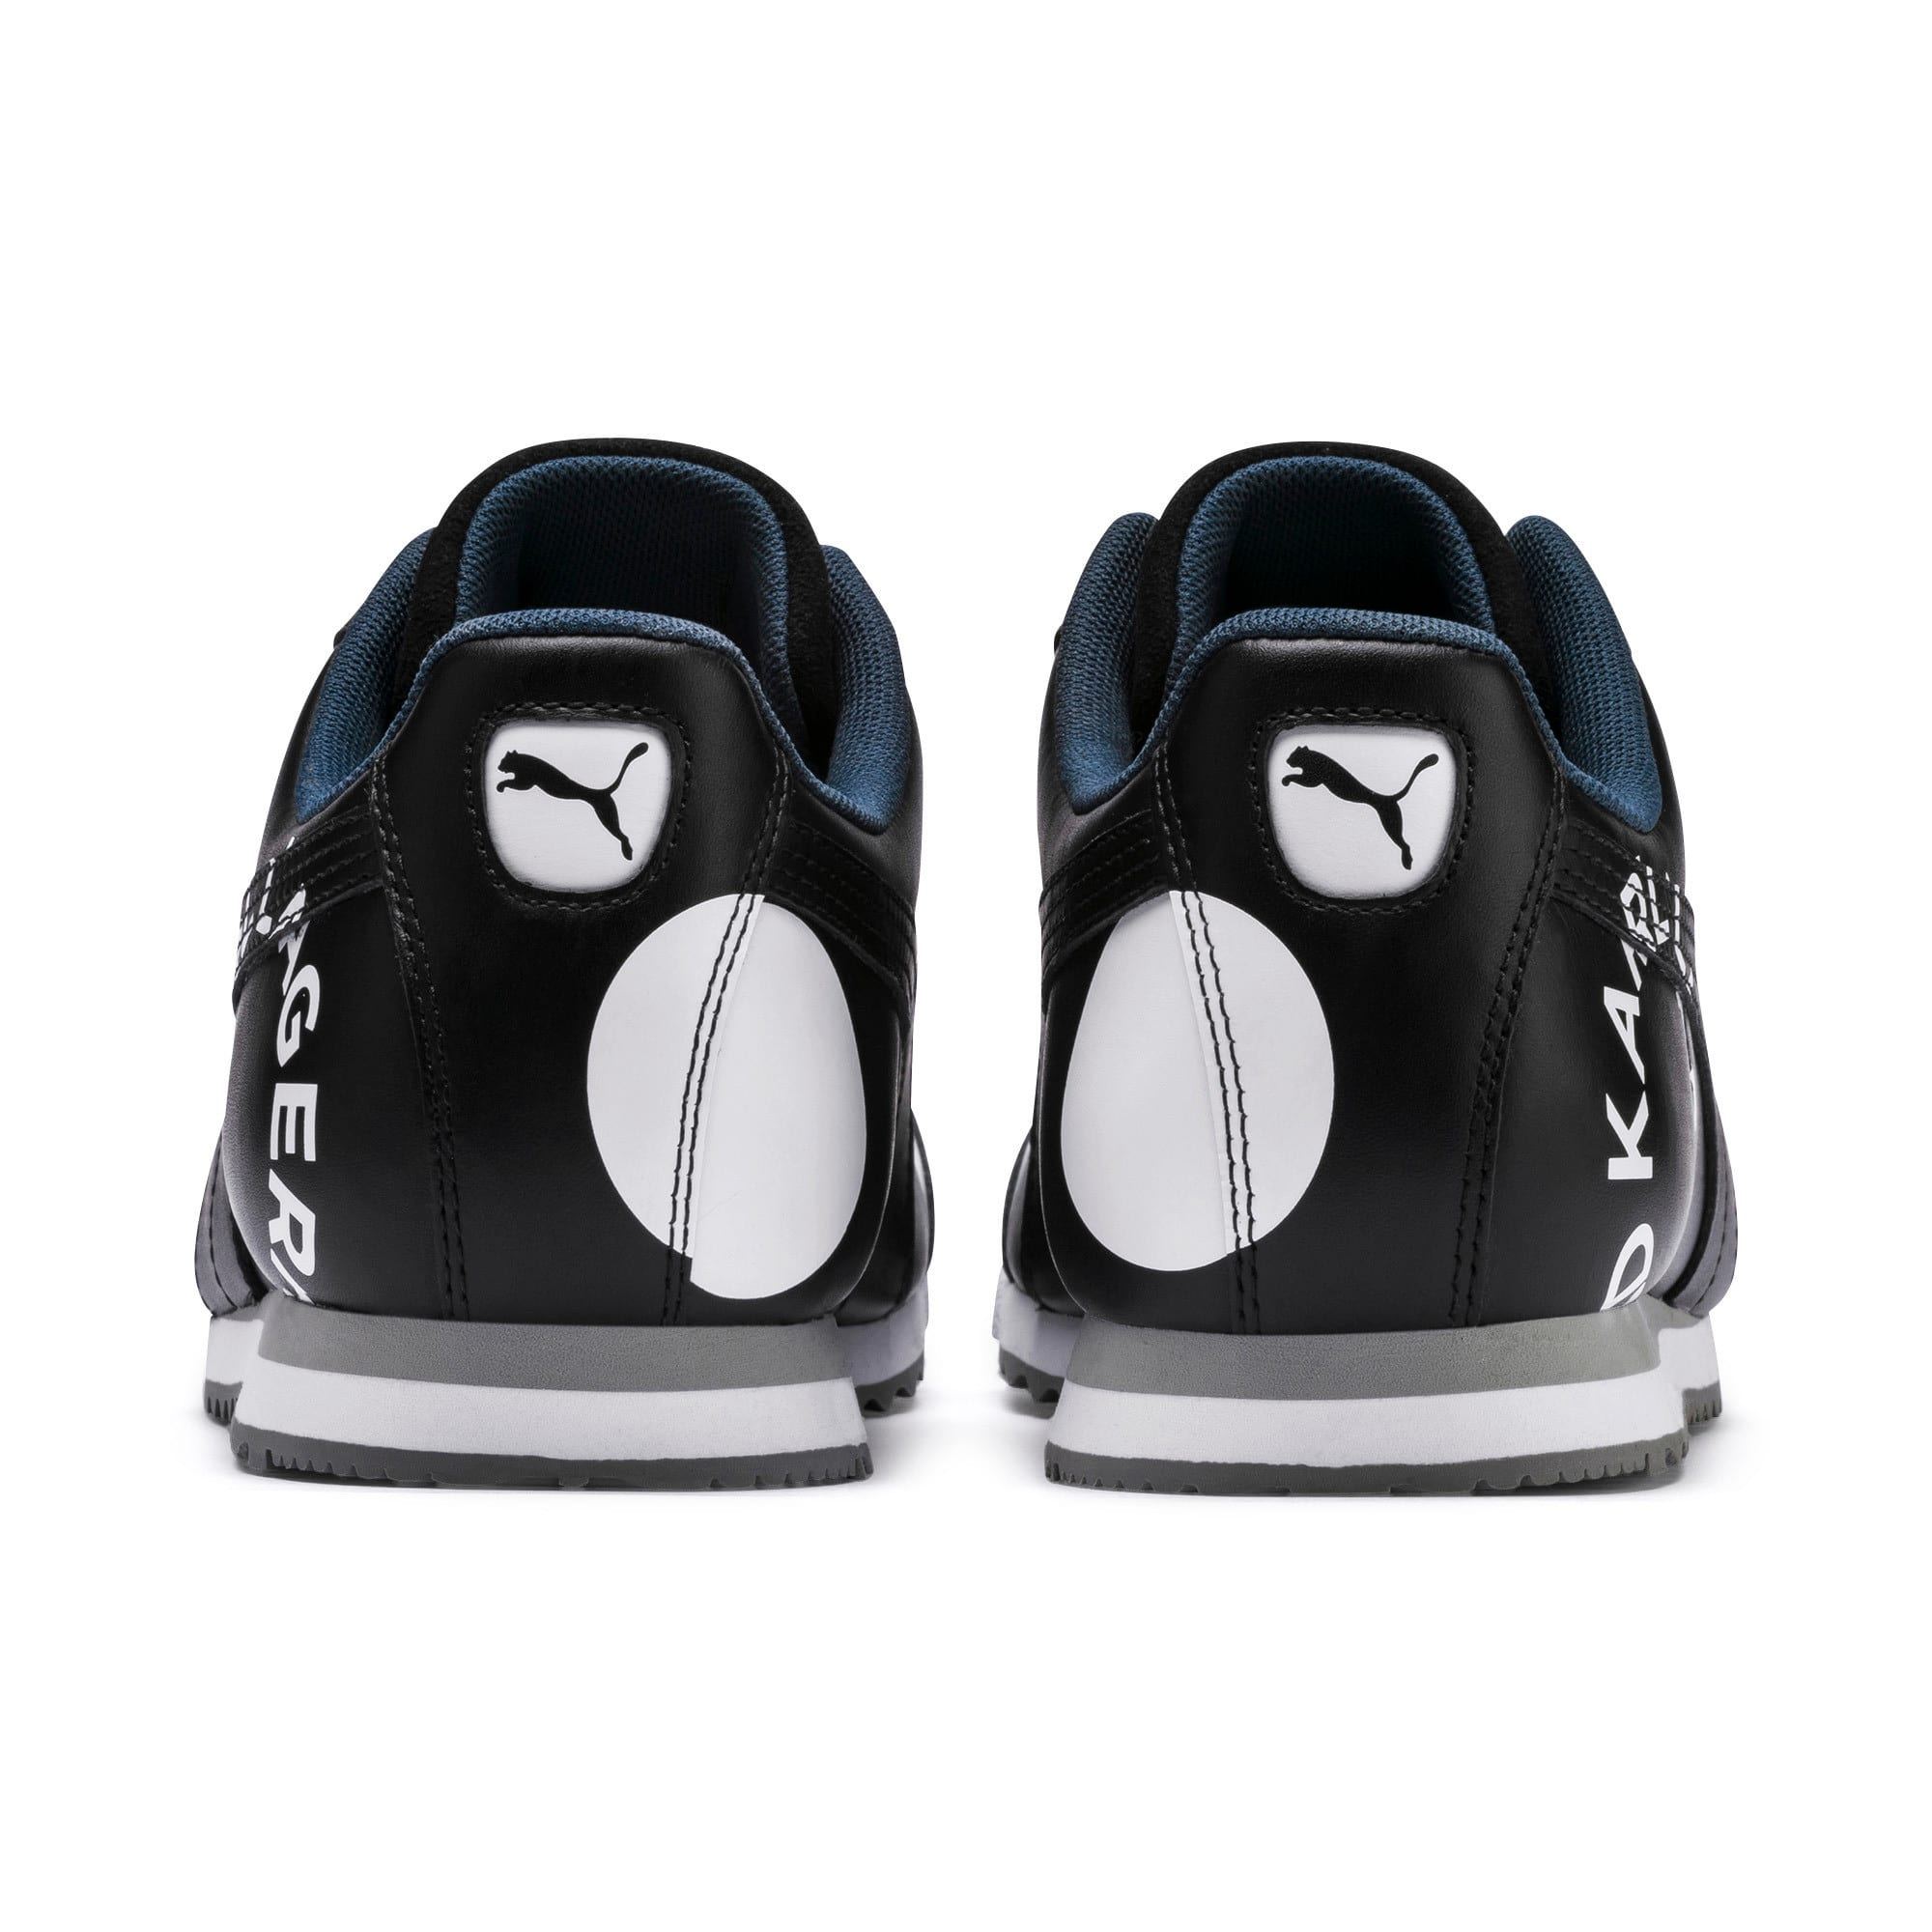 Thumbnail 3 of PUMA x KARL LAGERFELD Roma Trainers, Puma Black, medium